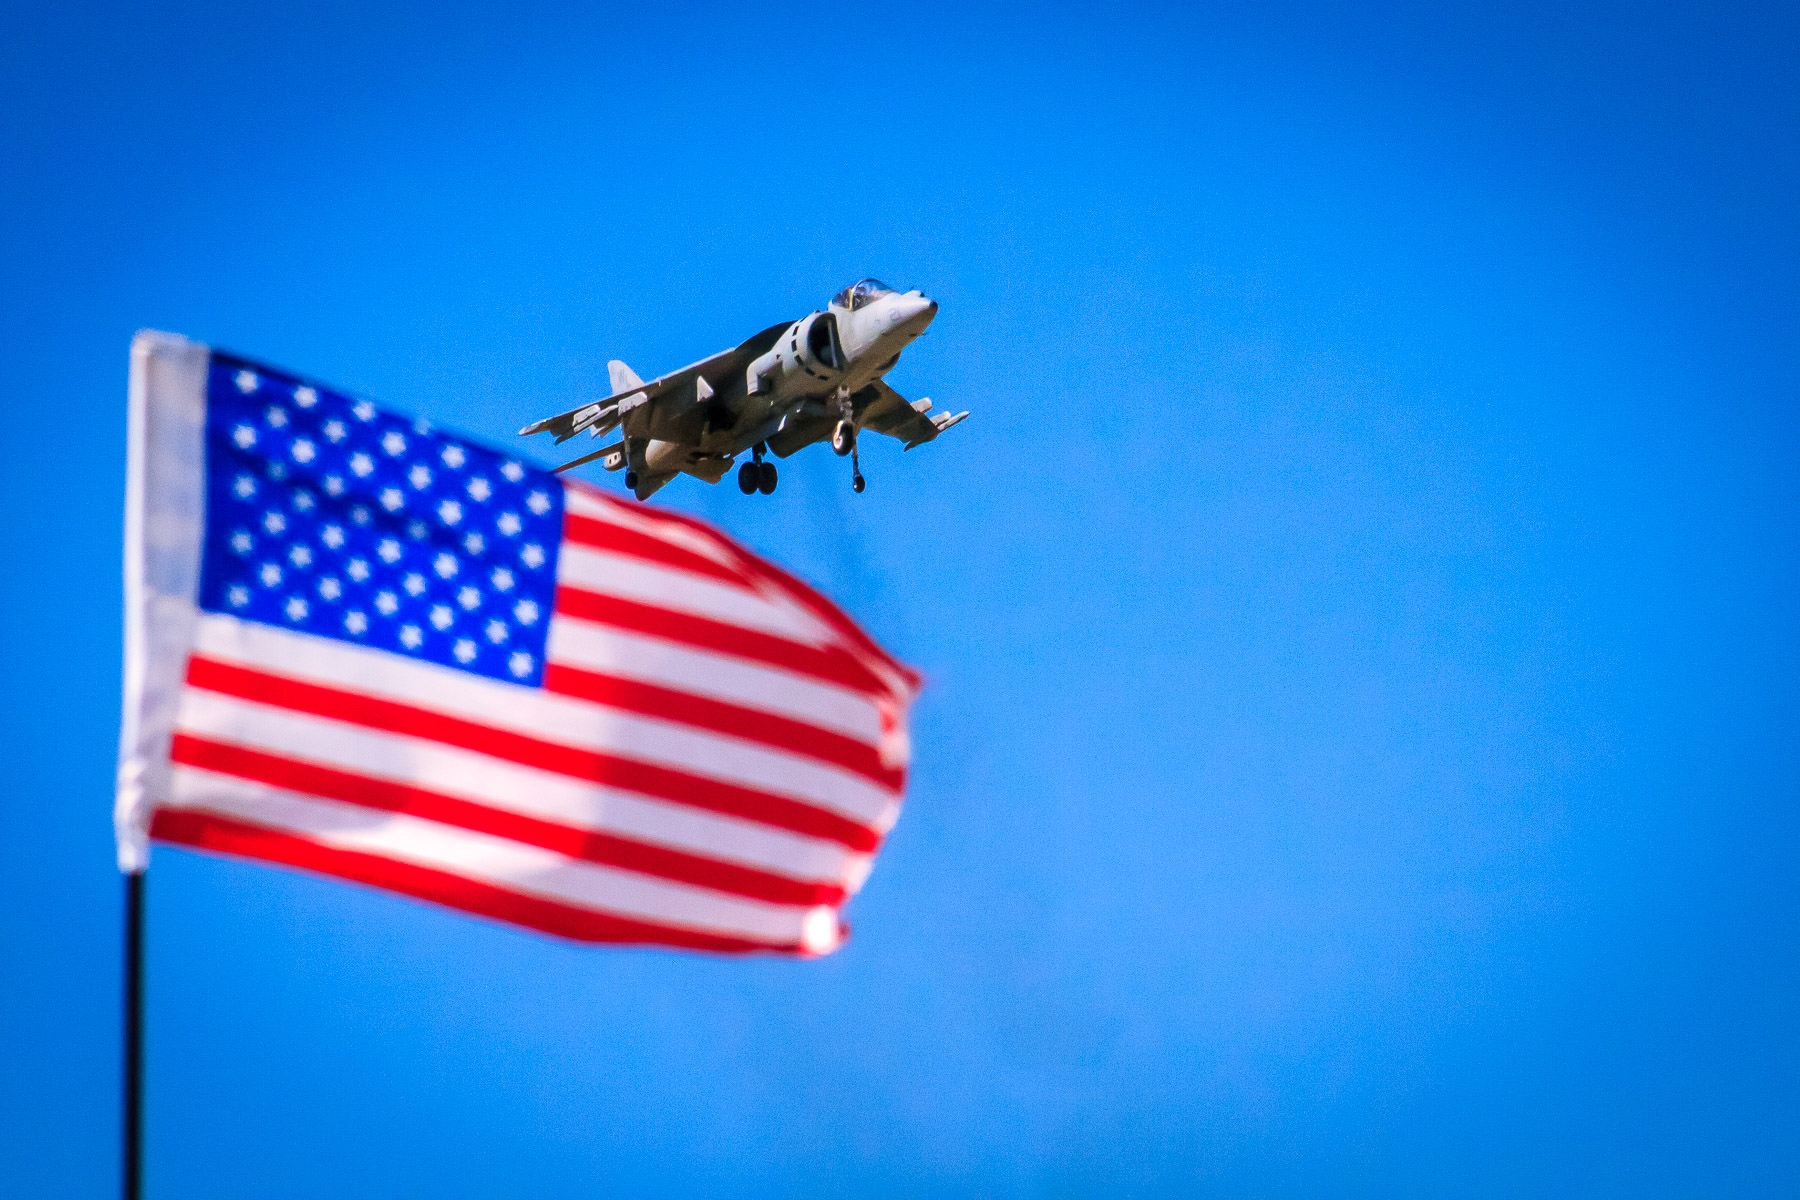 A US Marine Corps AV-8B Harrier II takes off at the Fort Worth-Alliance Air Show while an American Flag waves in the foreground.